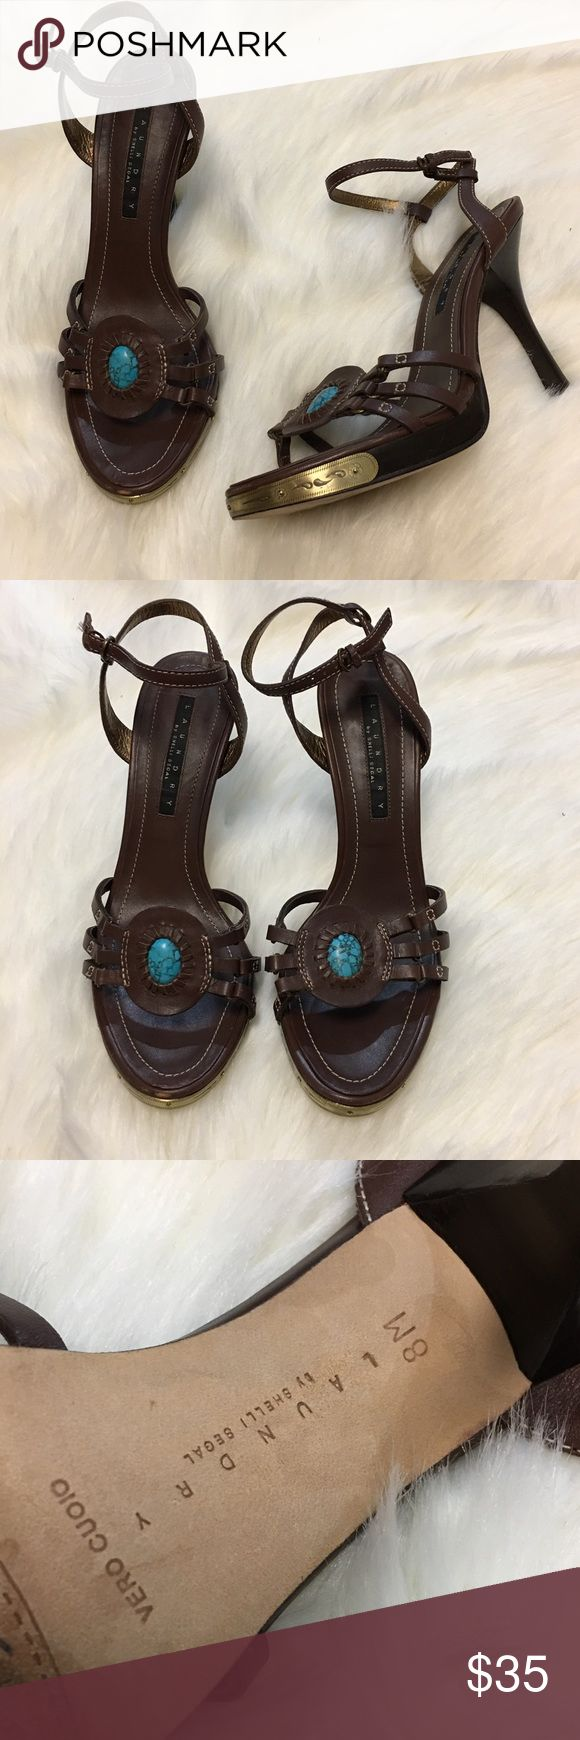 "Laundry Shelli Segal Turquoise Boho Beautiful Heel Laundry Shelli Segal Turquoise Boho Beautiful Heels. Size 8.  Thank you for looking at my listing. Please feel free to comment with any questions (no trades/modeling).  •Fabric: Leather  •Heel height: 3.5""  •Condition: EUC, No major flaws.   ✨Bundle and save!✨10% off 2 items, 20% off 3 items & 30% off 5+ items! C1 Laundry by Shelli Segal Shoes Heels"